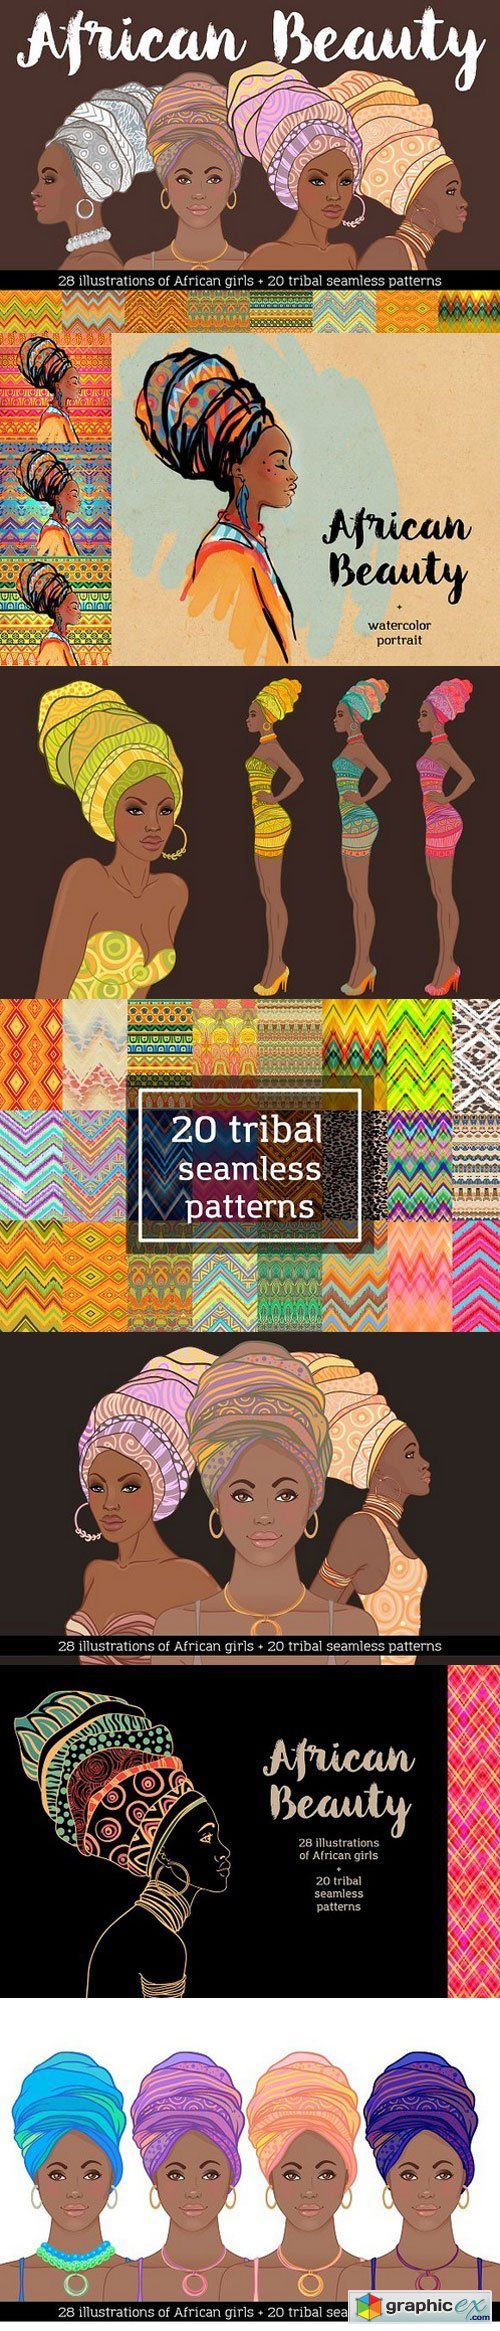 African Beauty Vector Set